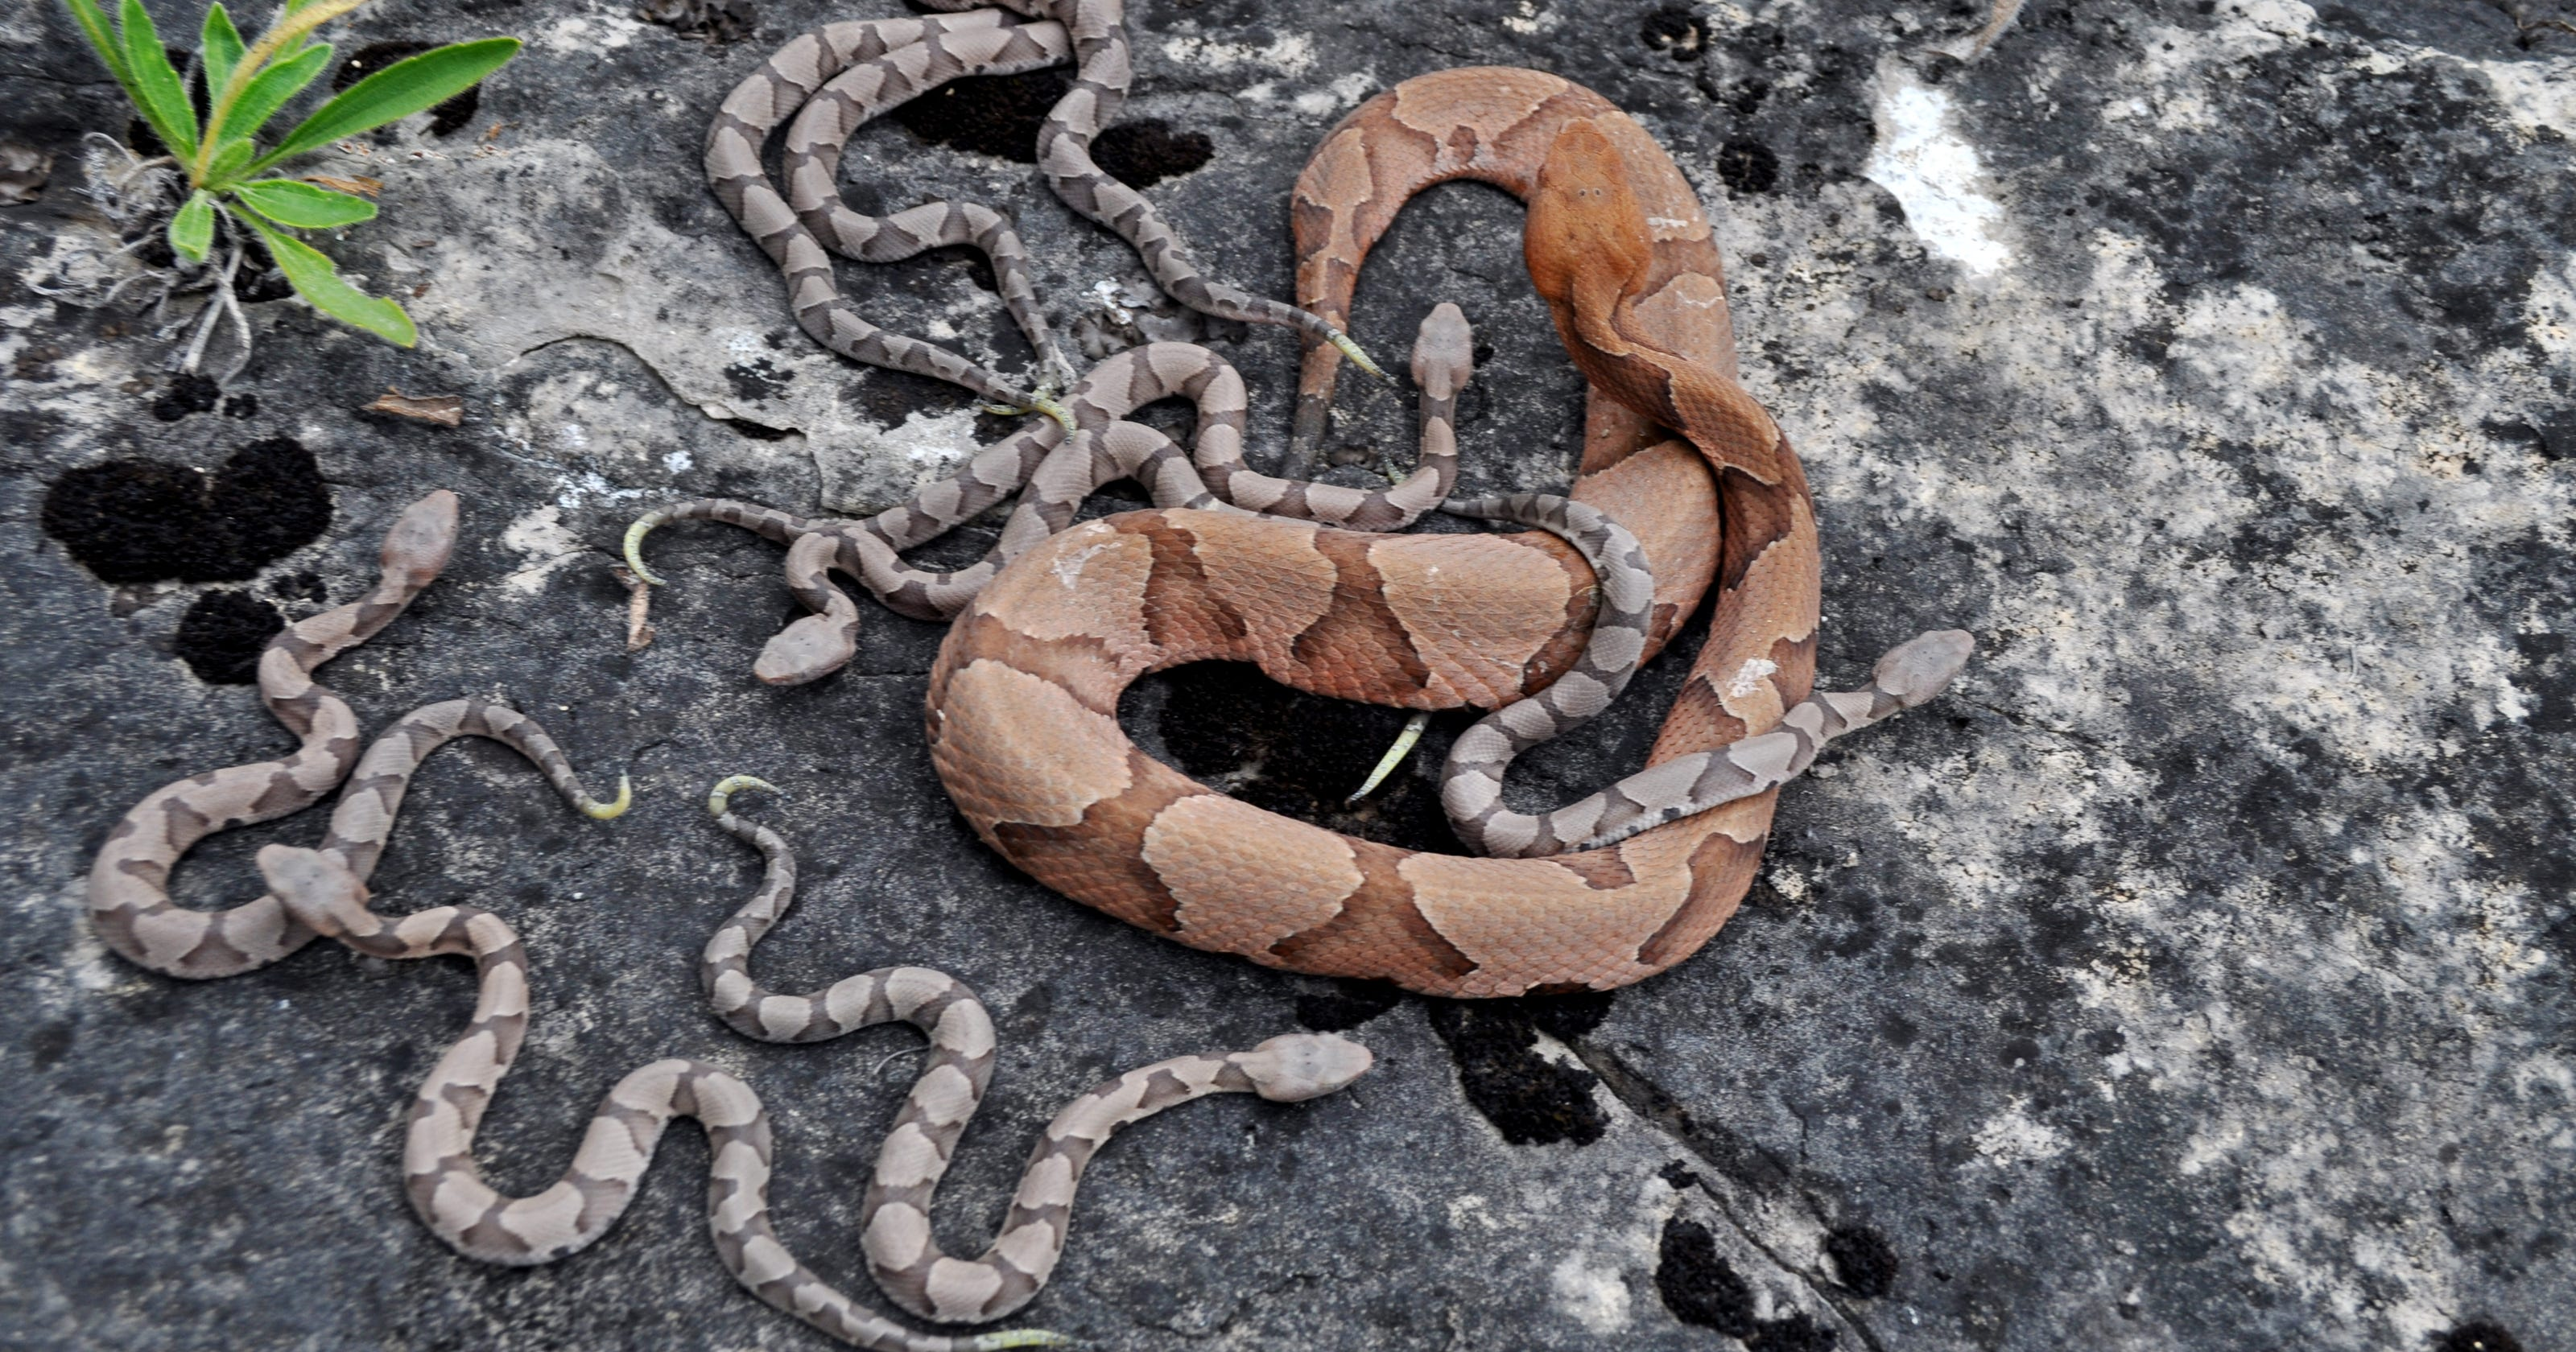 636286392204998500-MDC-Copperhead-and-young-2016.jpg?width=3200&height=1680&fit=crop.jpg